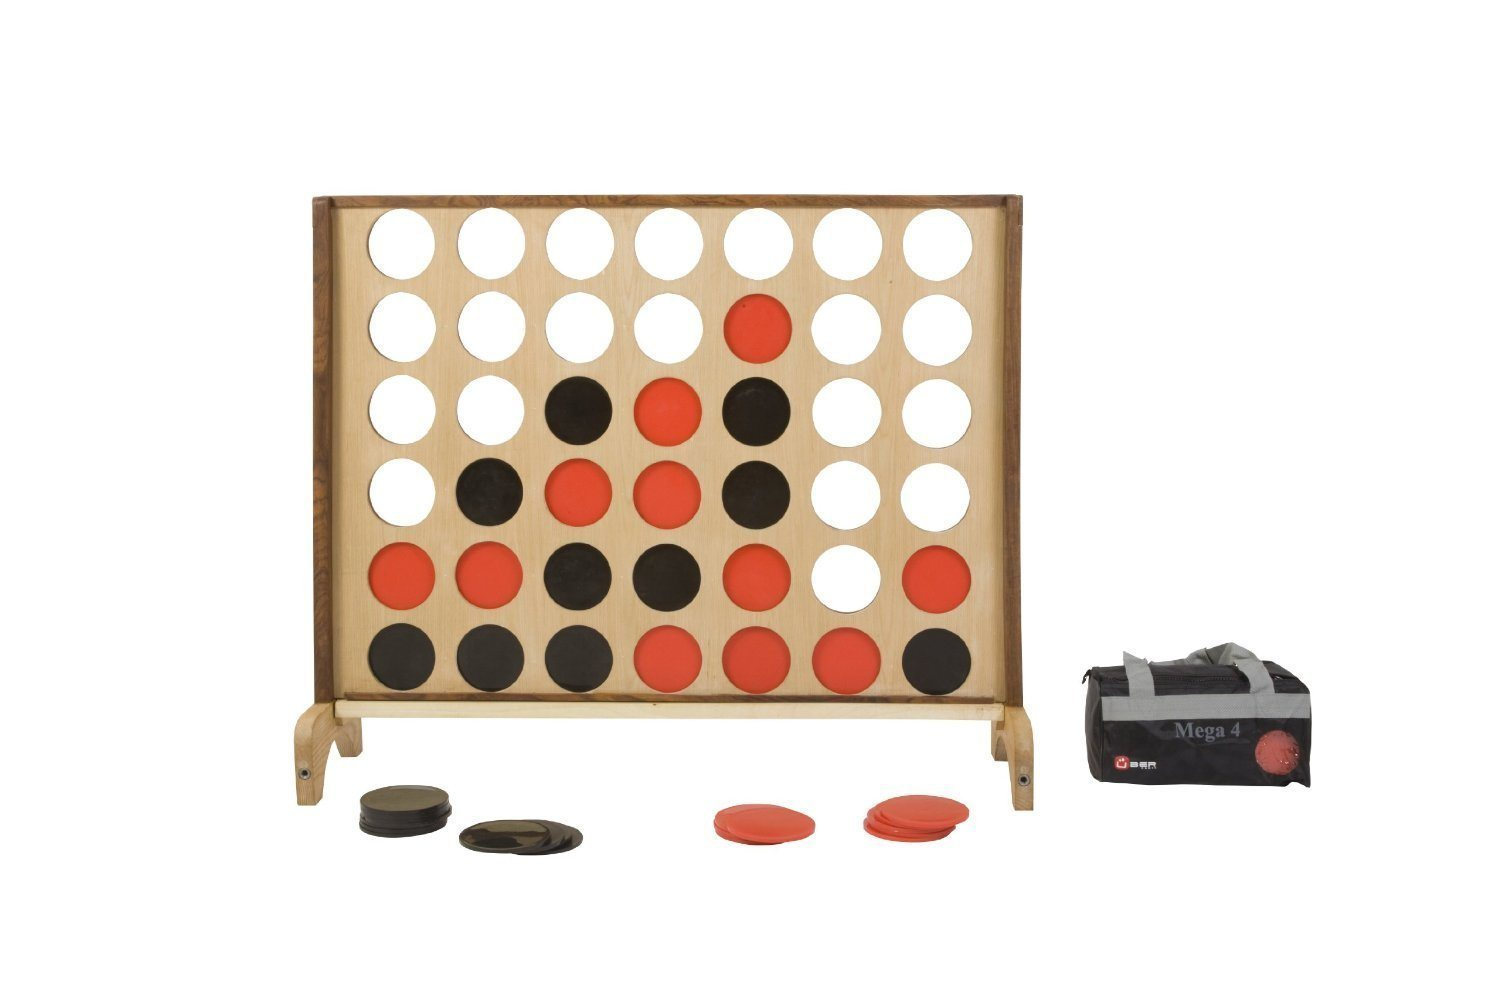 Giant Games for High End Events